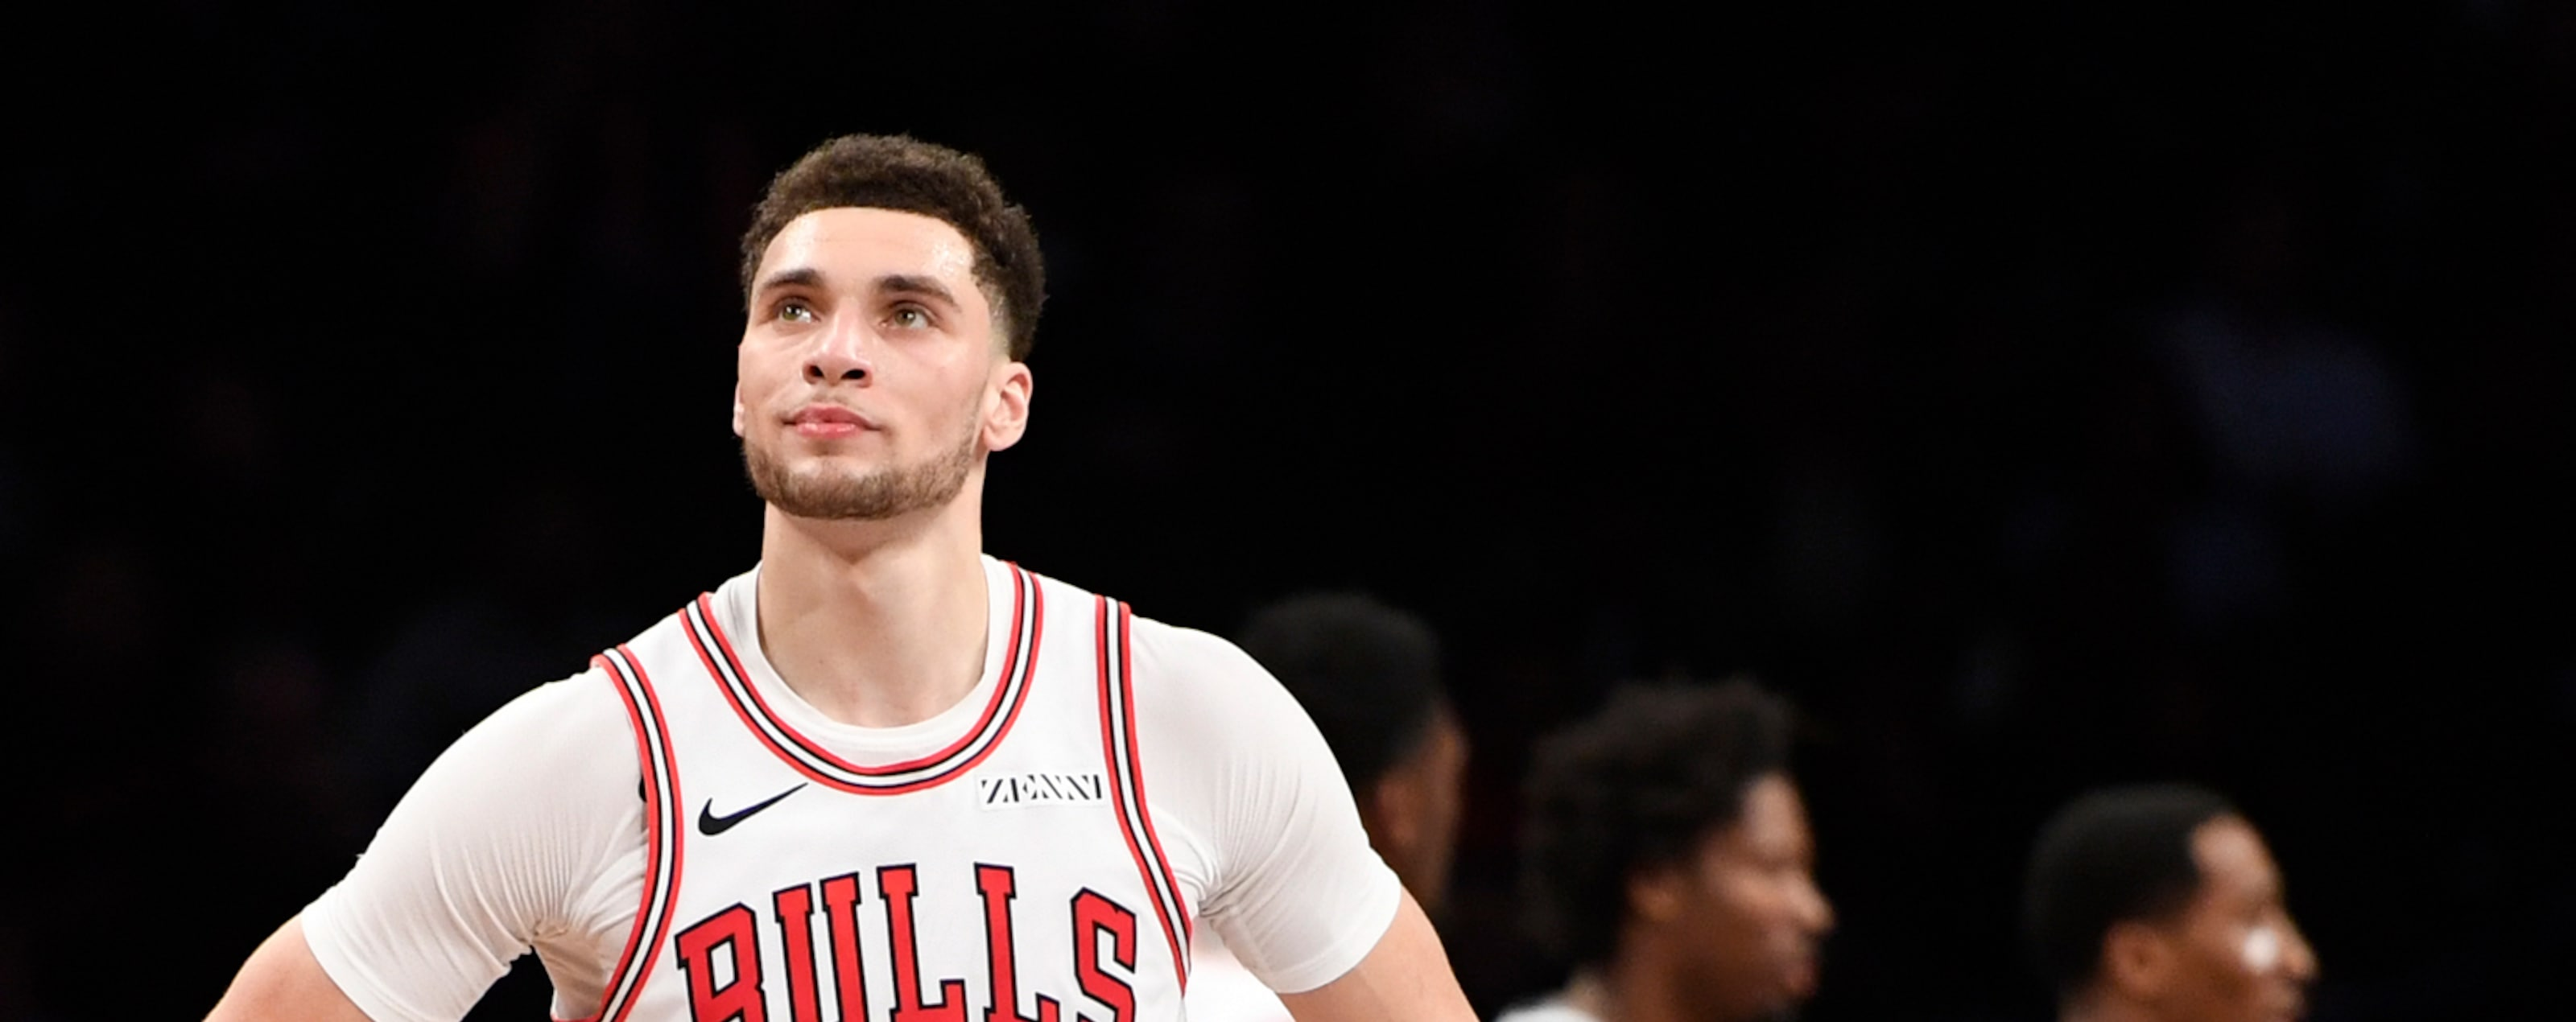 Zach LaVine #8 of the Chicago Bulls reacts after a call during the third quarter of the game against the Brooklyn Nets at Barclays Center on January 29, 2019 in the Brooklyn borough of New York City.